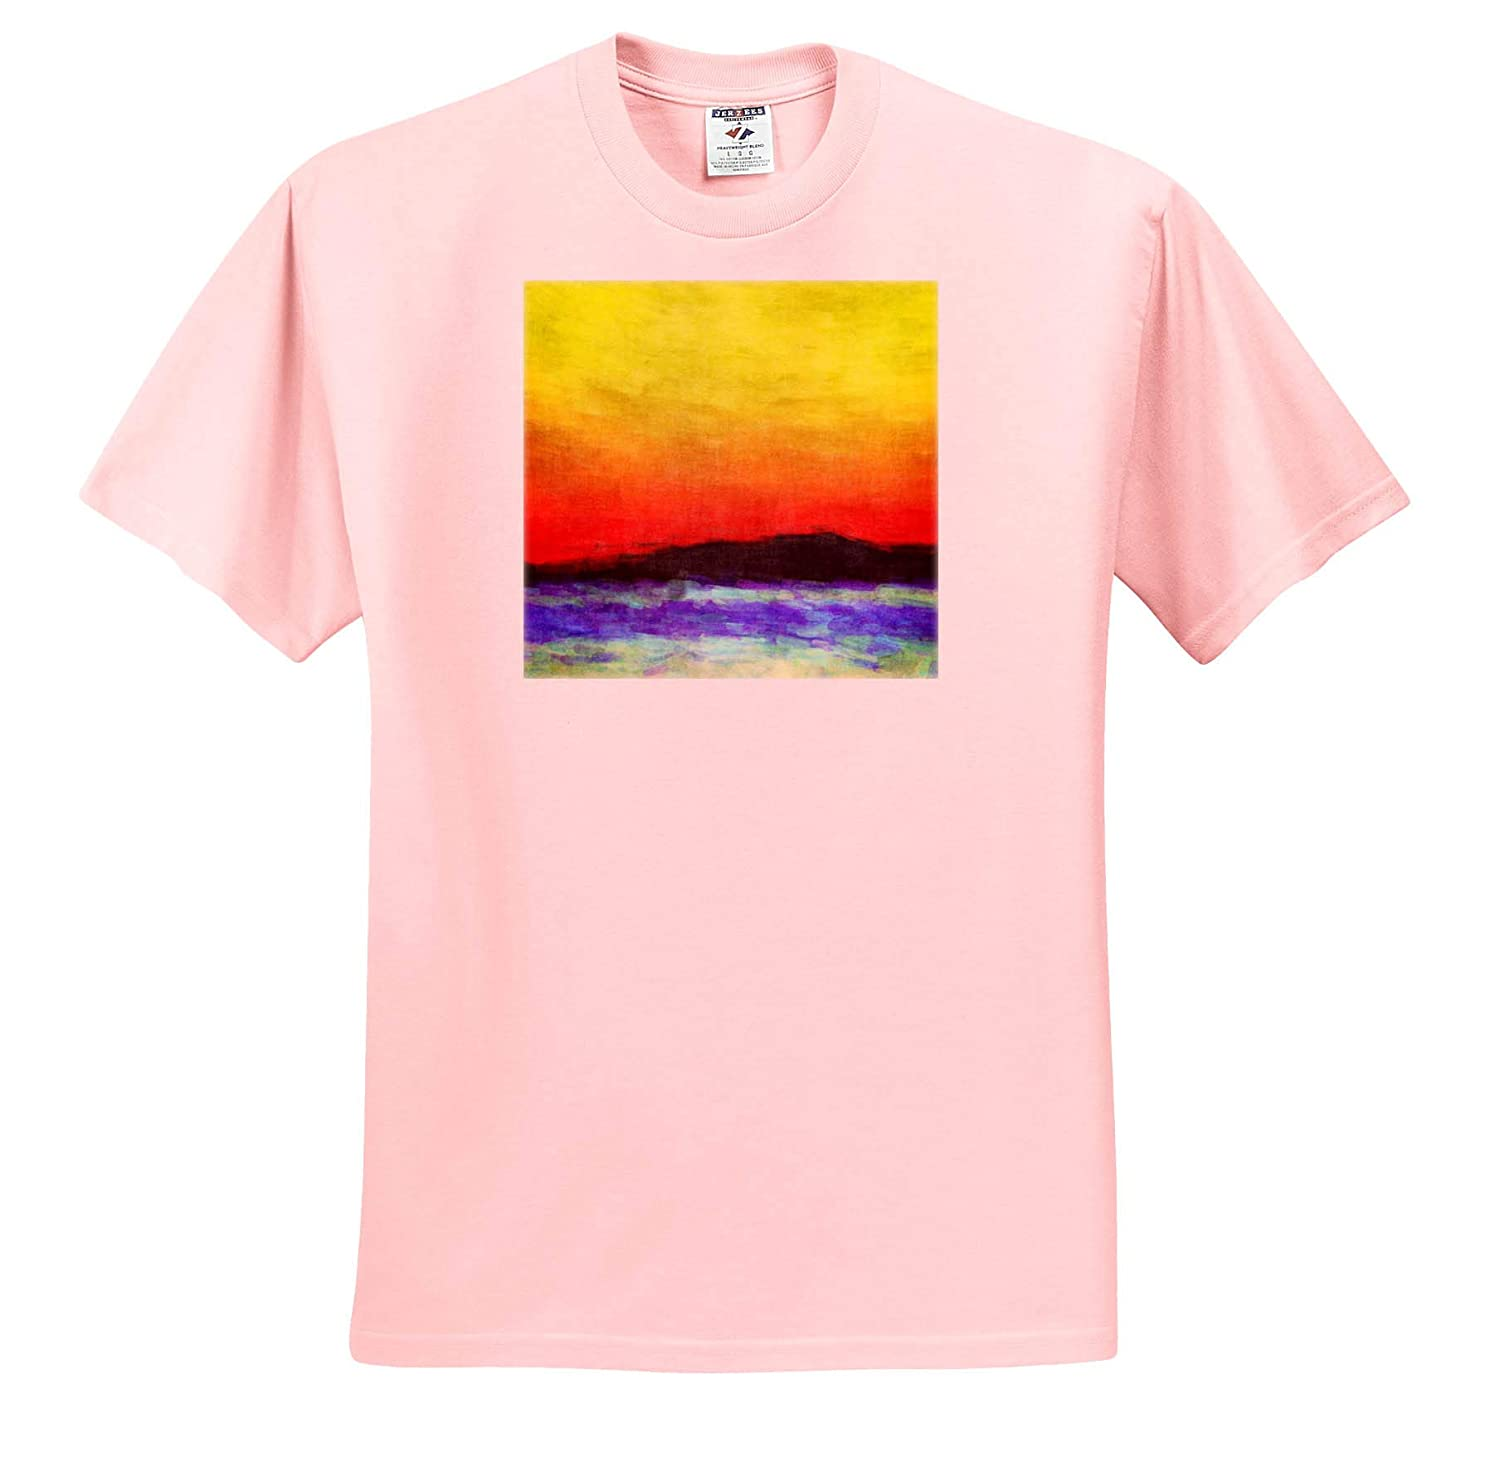 Contemporary Abstract Impressionist Digital Painting go Colorful Ocean Nature 3dRose Perkins Designs T-Shirts